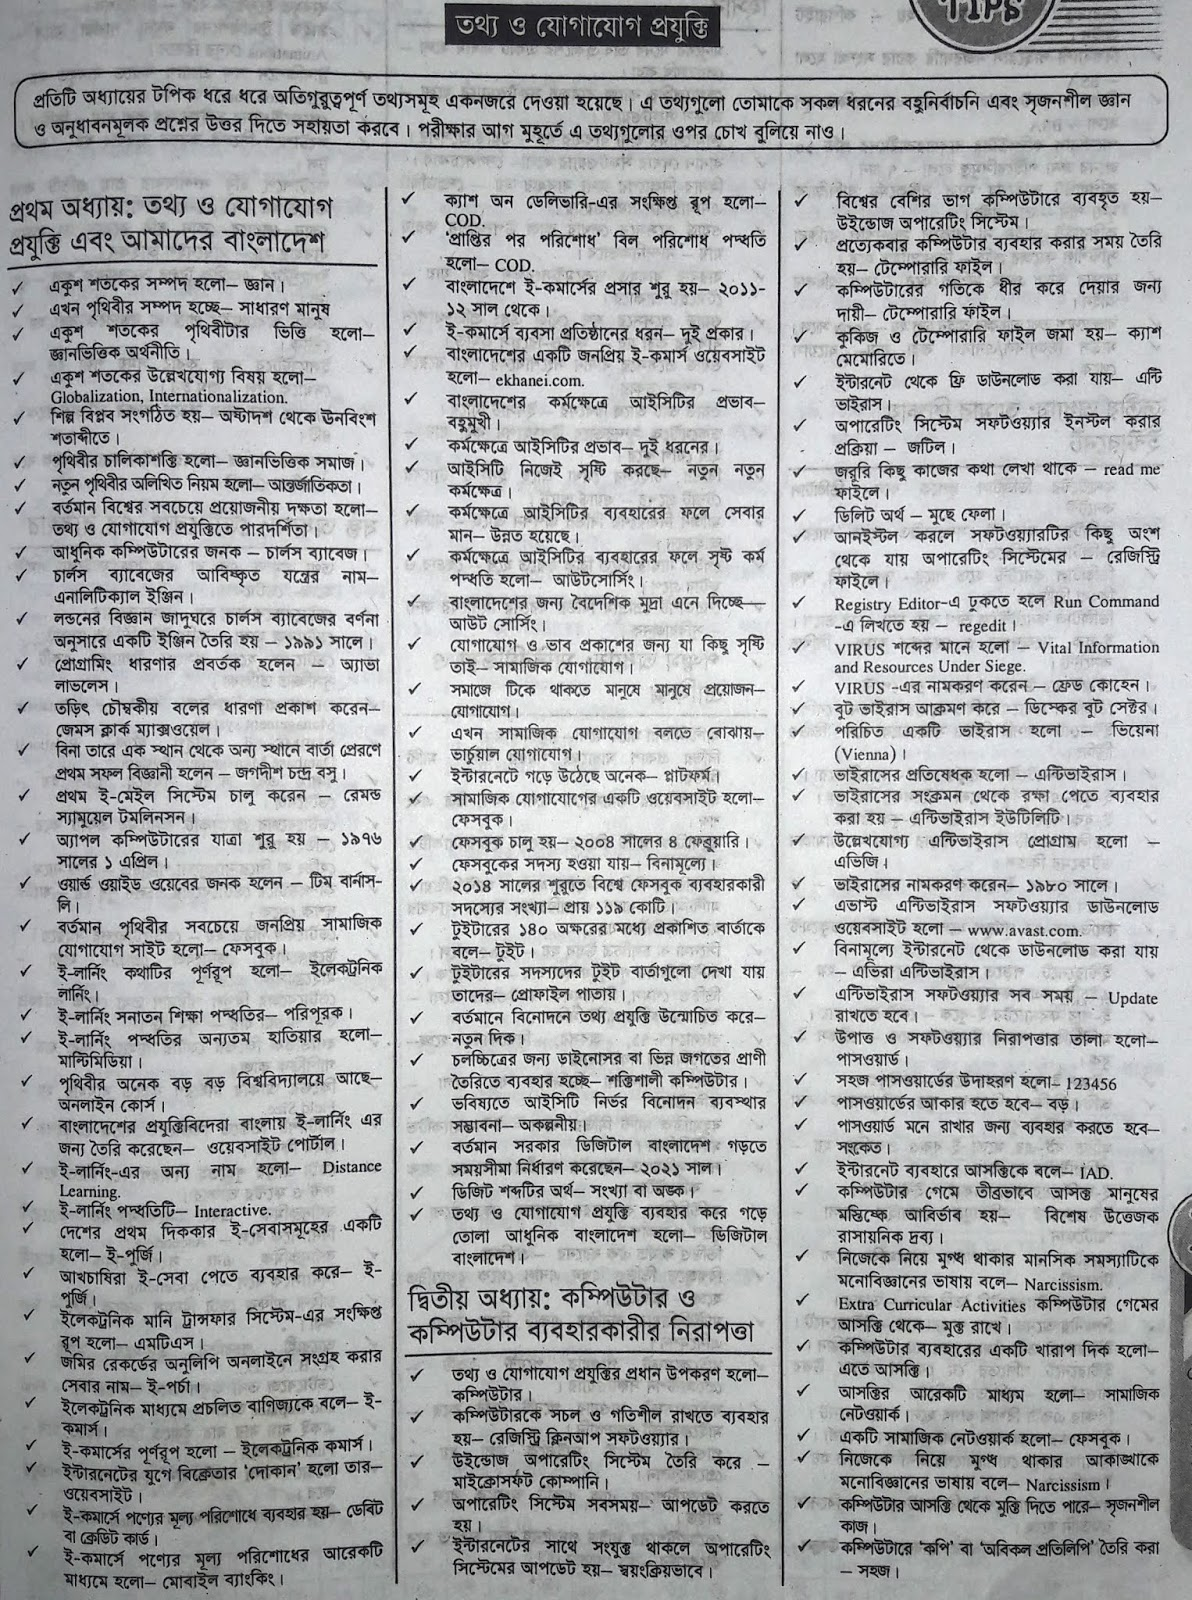 SSC ICT suggestion, question paper, model question, mcq question, question pattern, syllabus for dhaka board, all boards